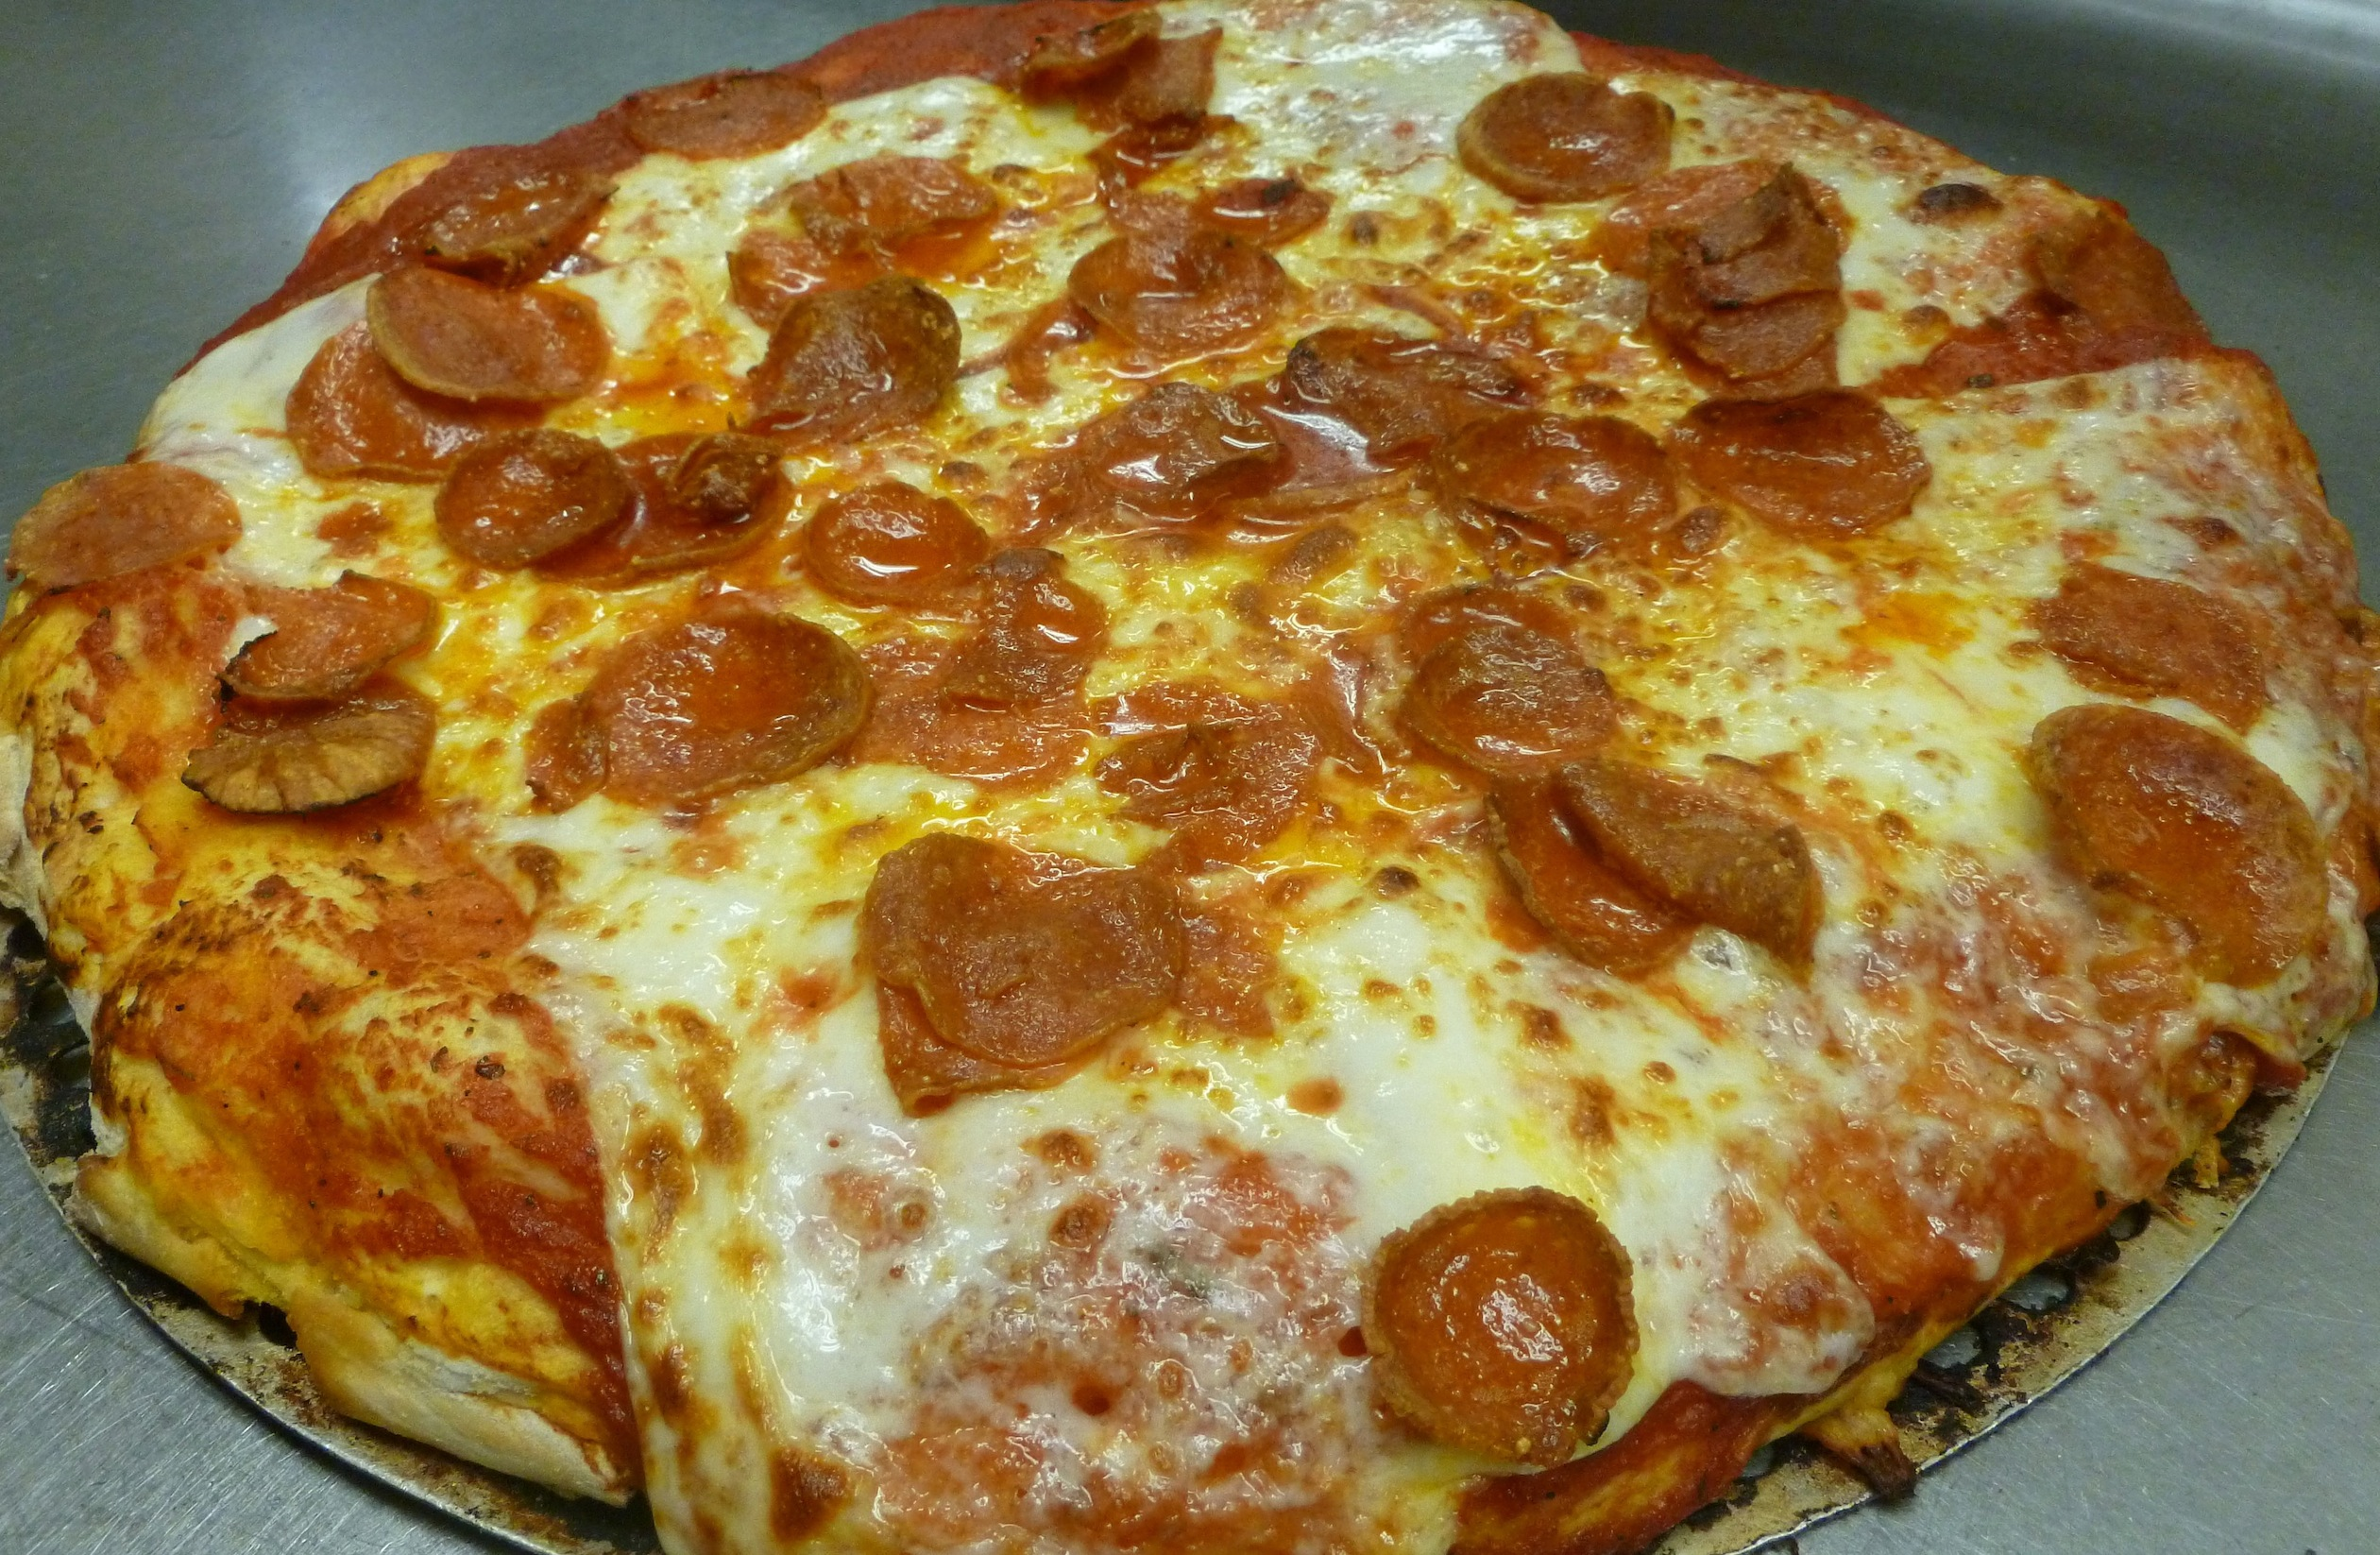 $12 LG 1-topping *ONLINE ONLY SPECIAL* Image